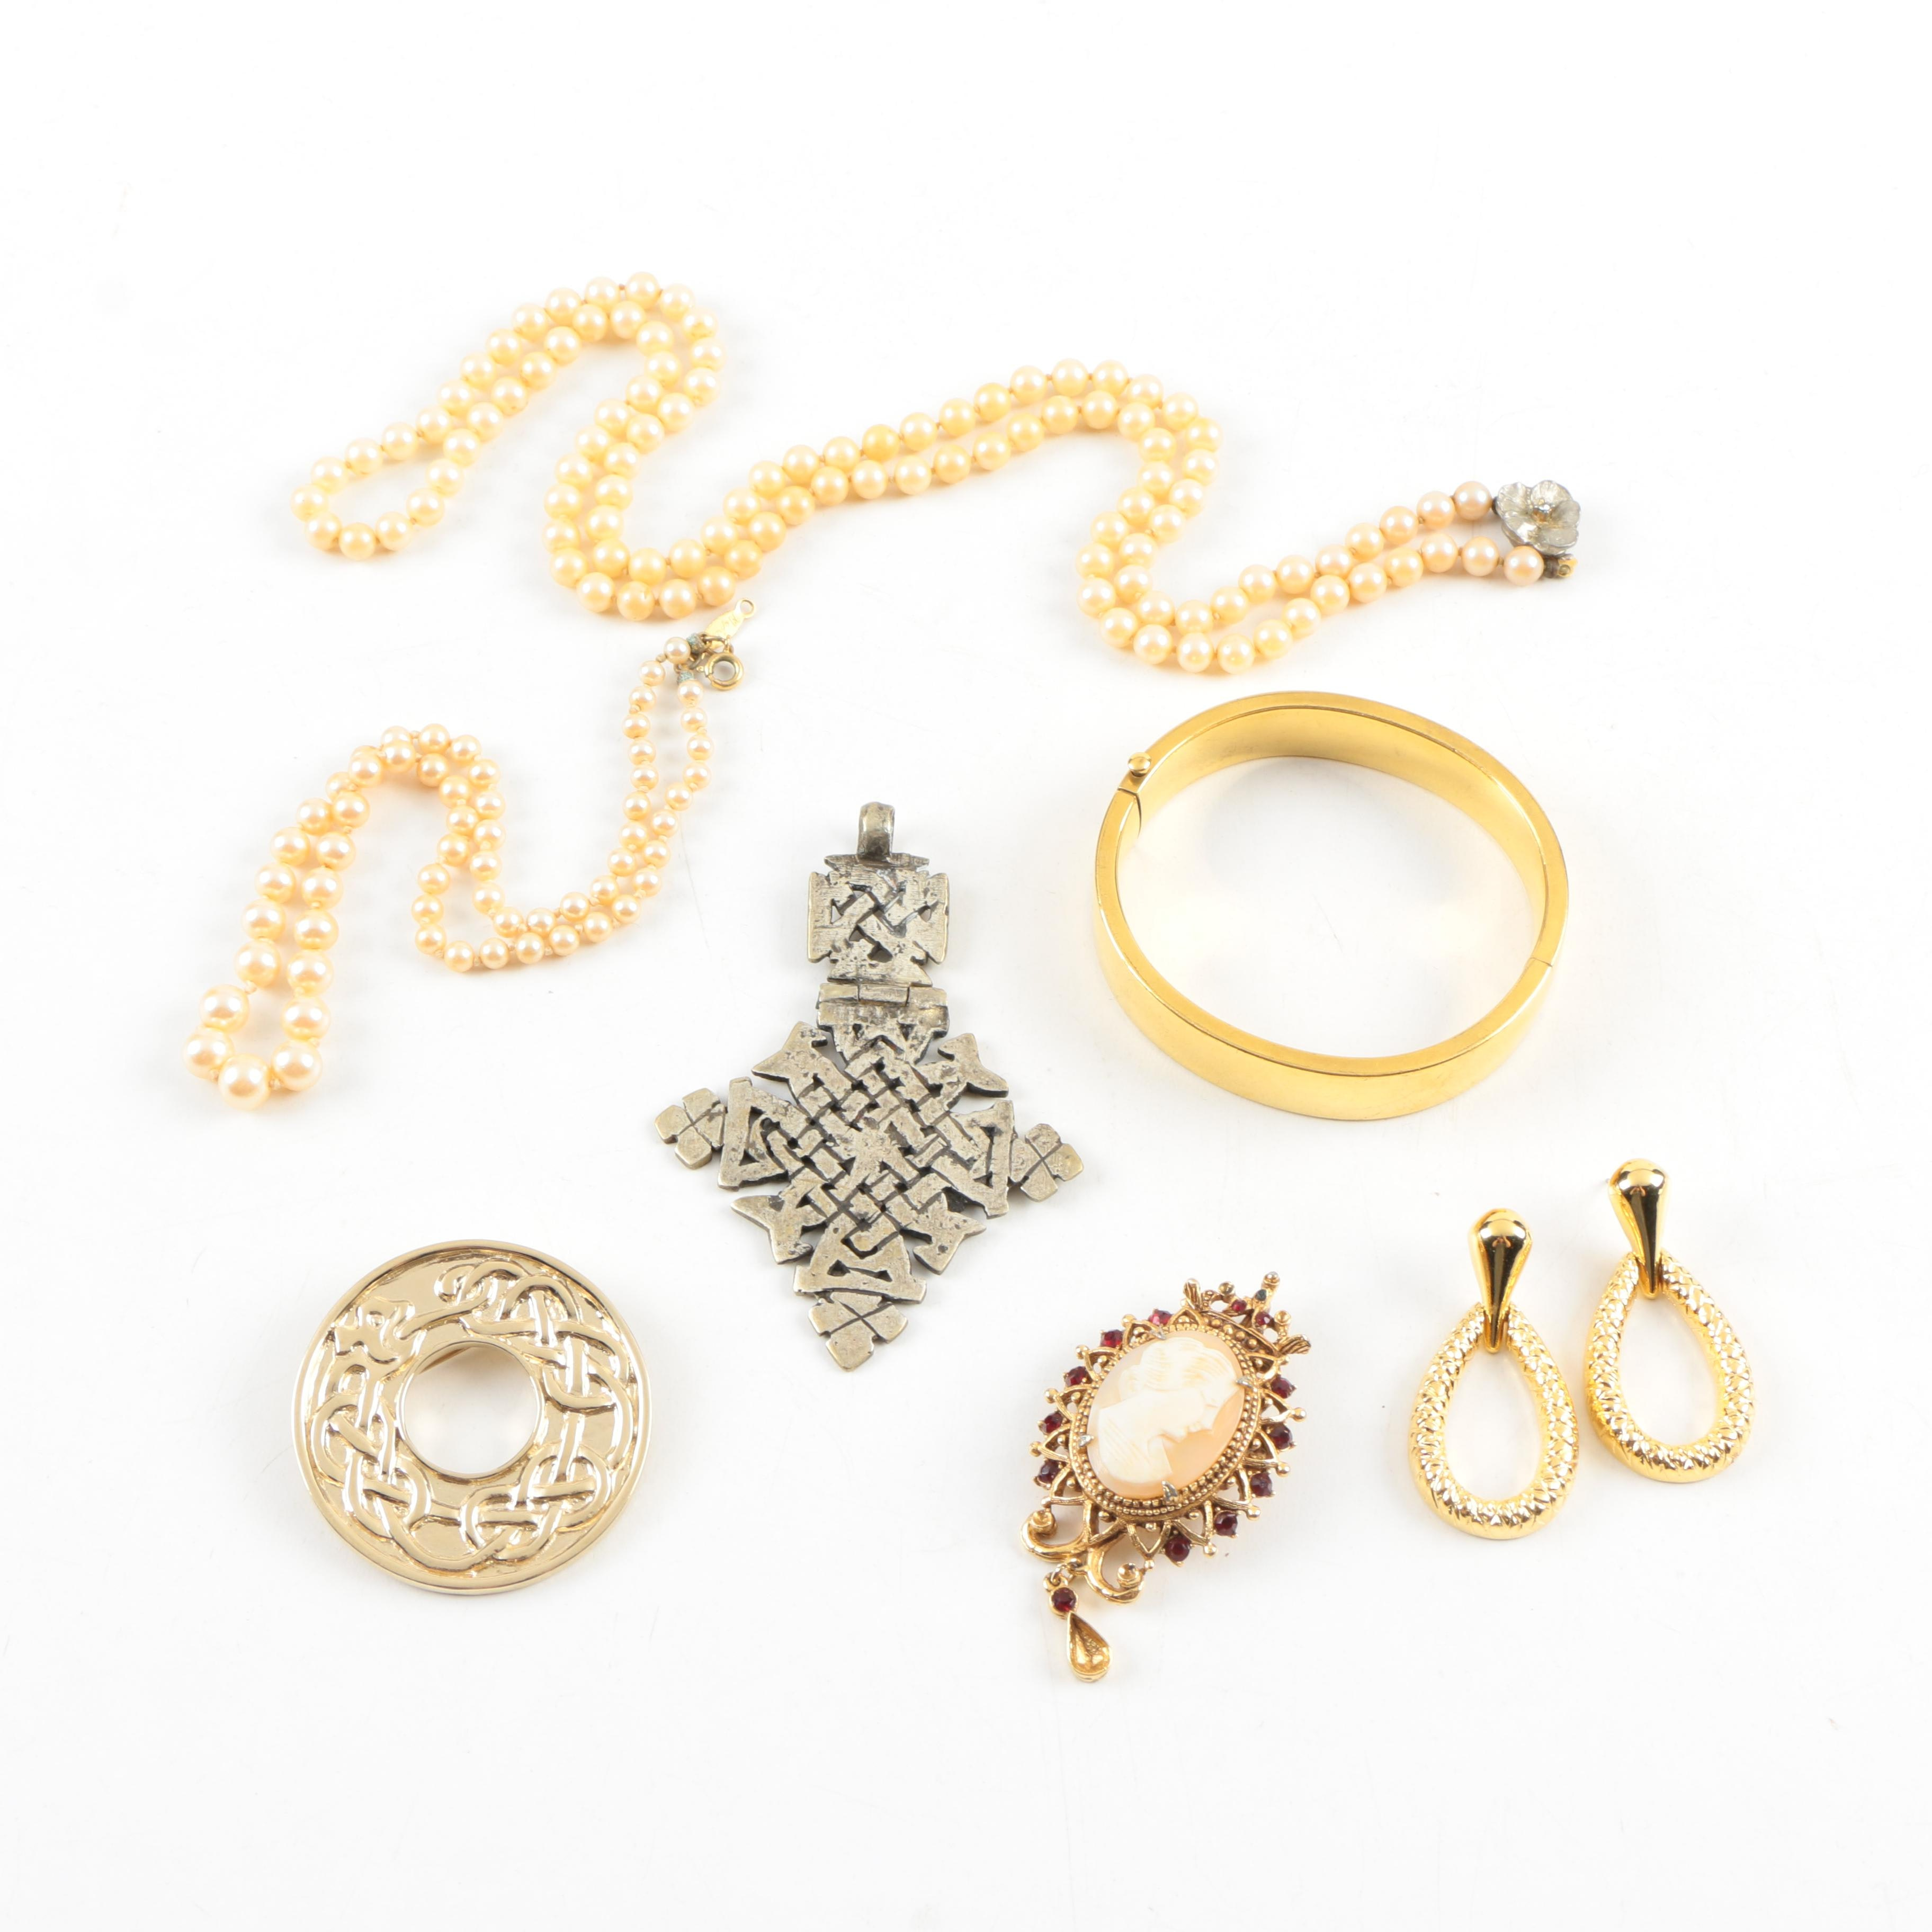 Collection of Vintage Costume Jewelry Including Florenza